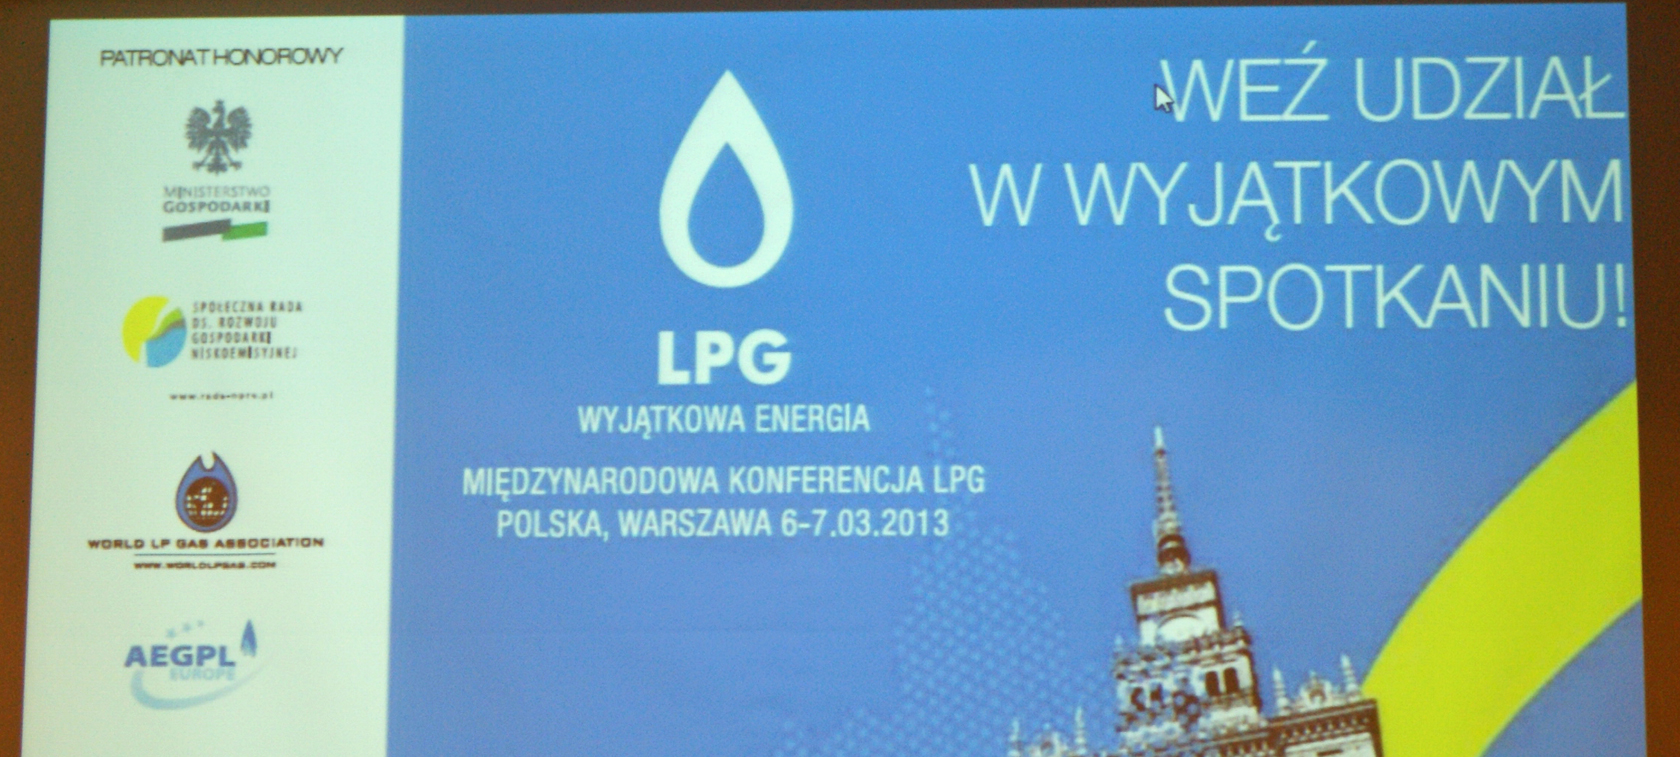 LPG - Exceptional Energy 2013: getting better